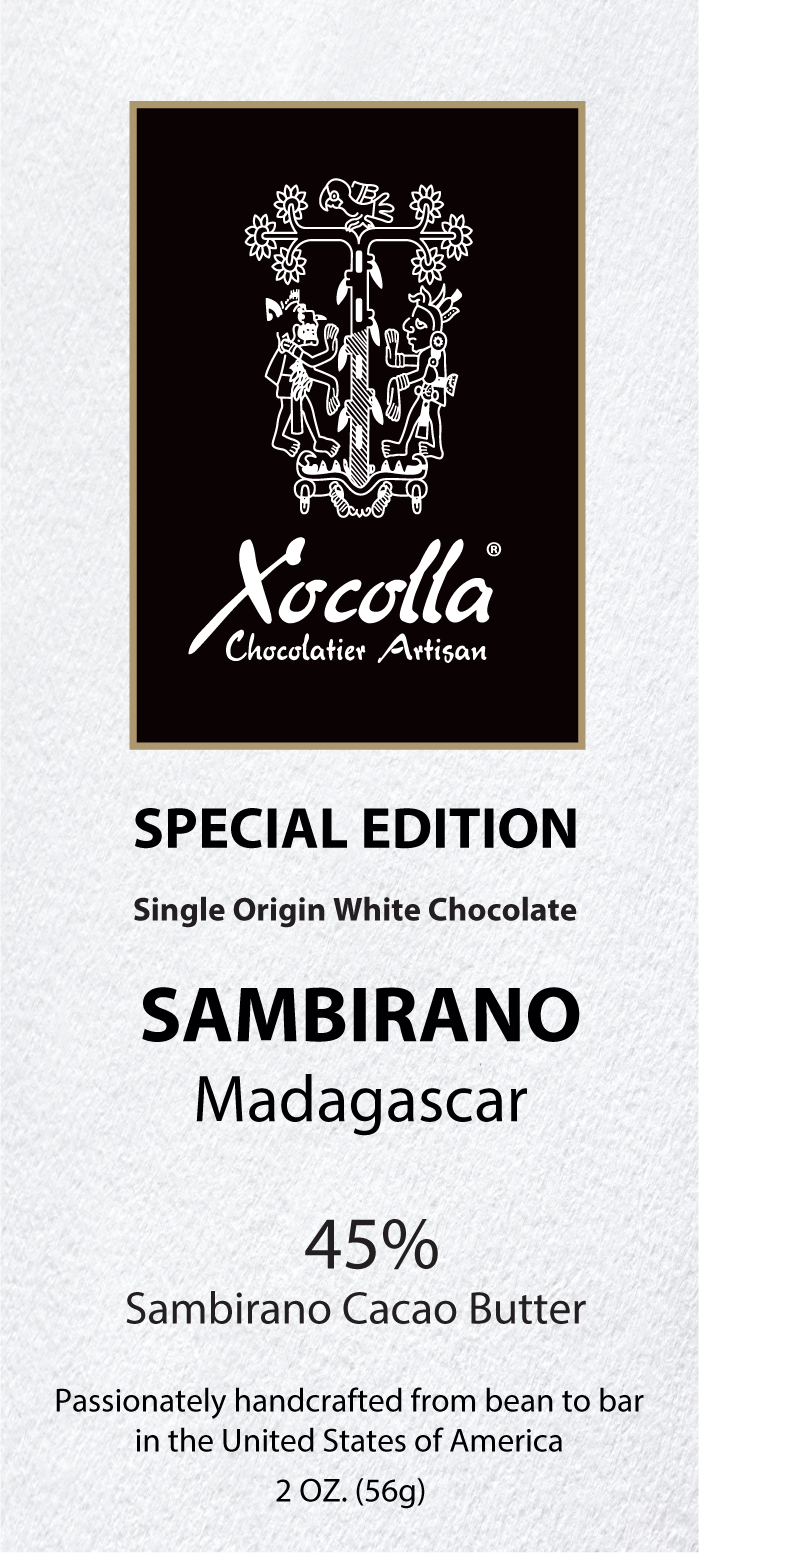 Single Origin White Chocolate - Sambirano 45%